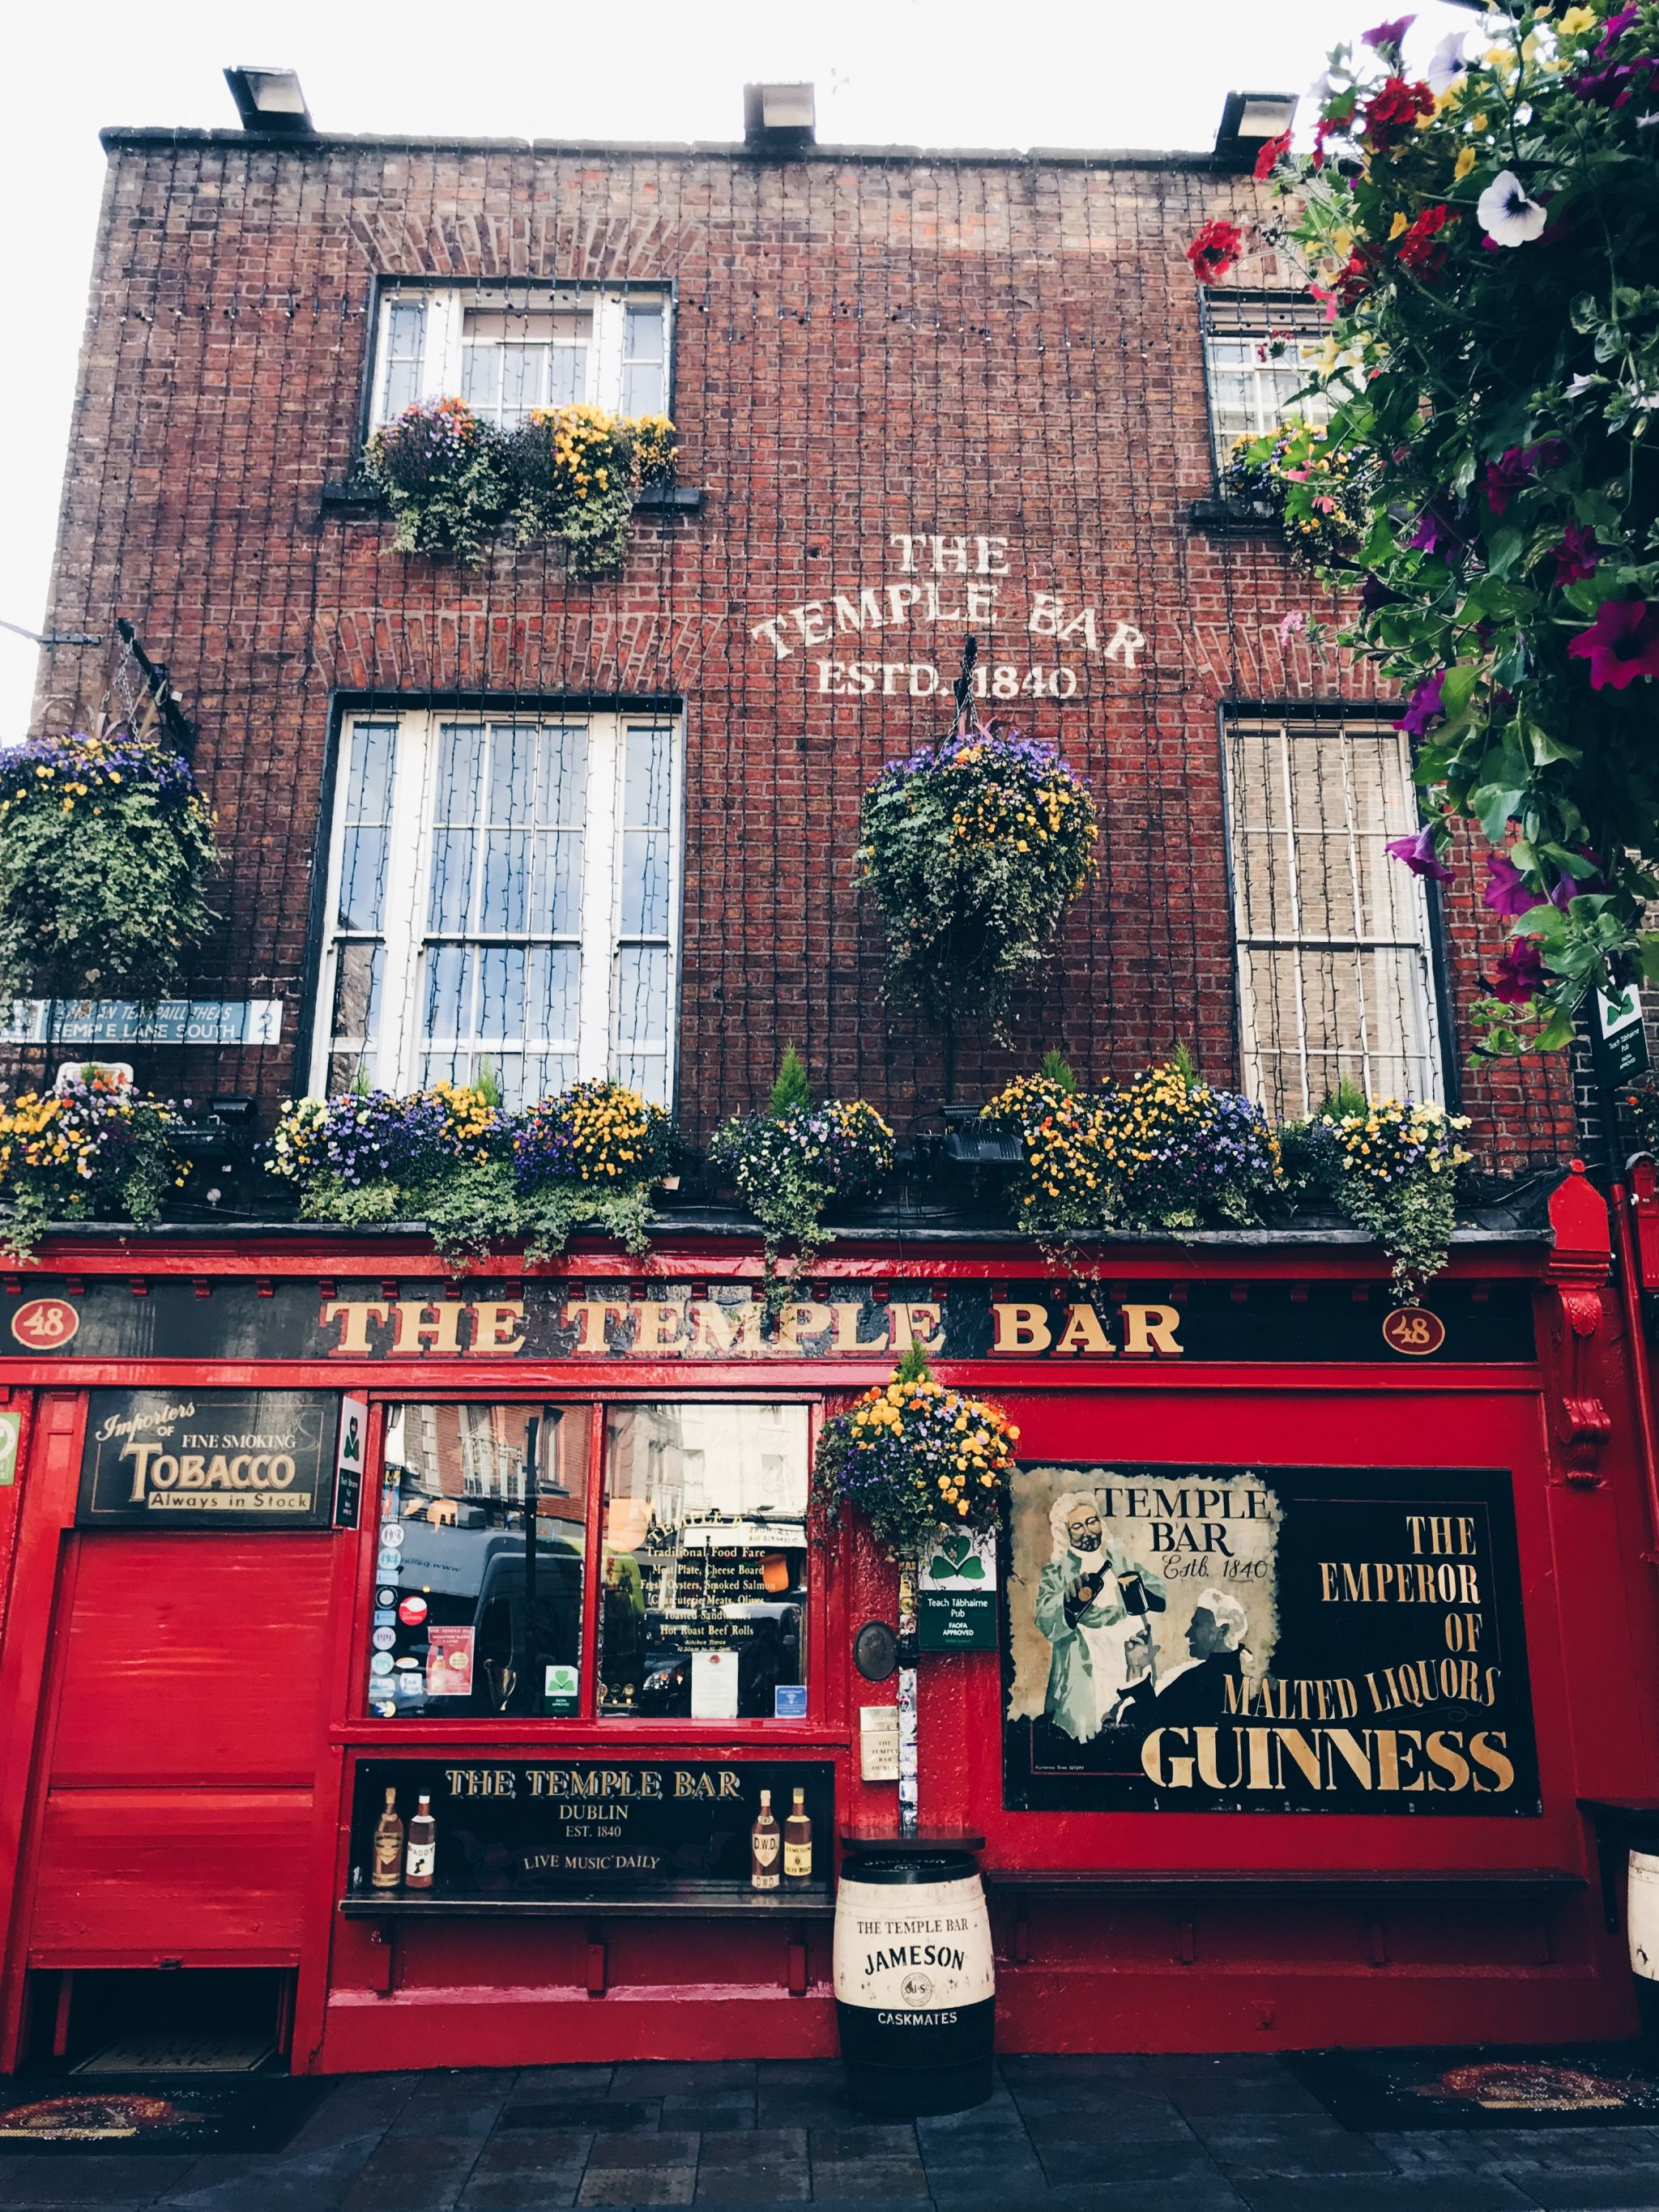 Dublin in a day - Drink at temple bar